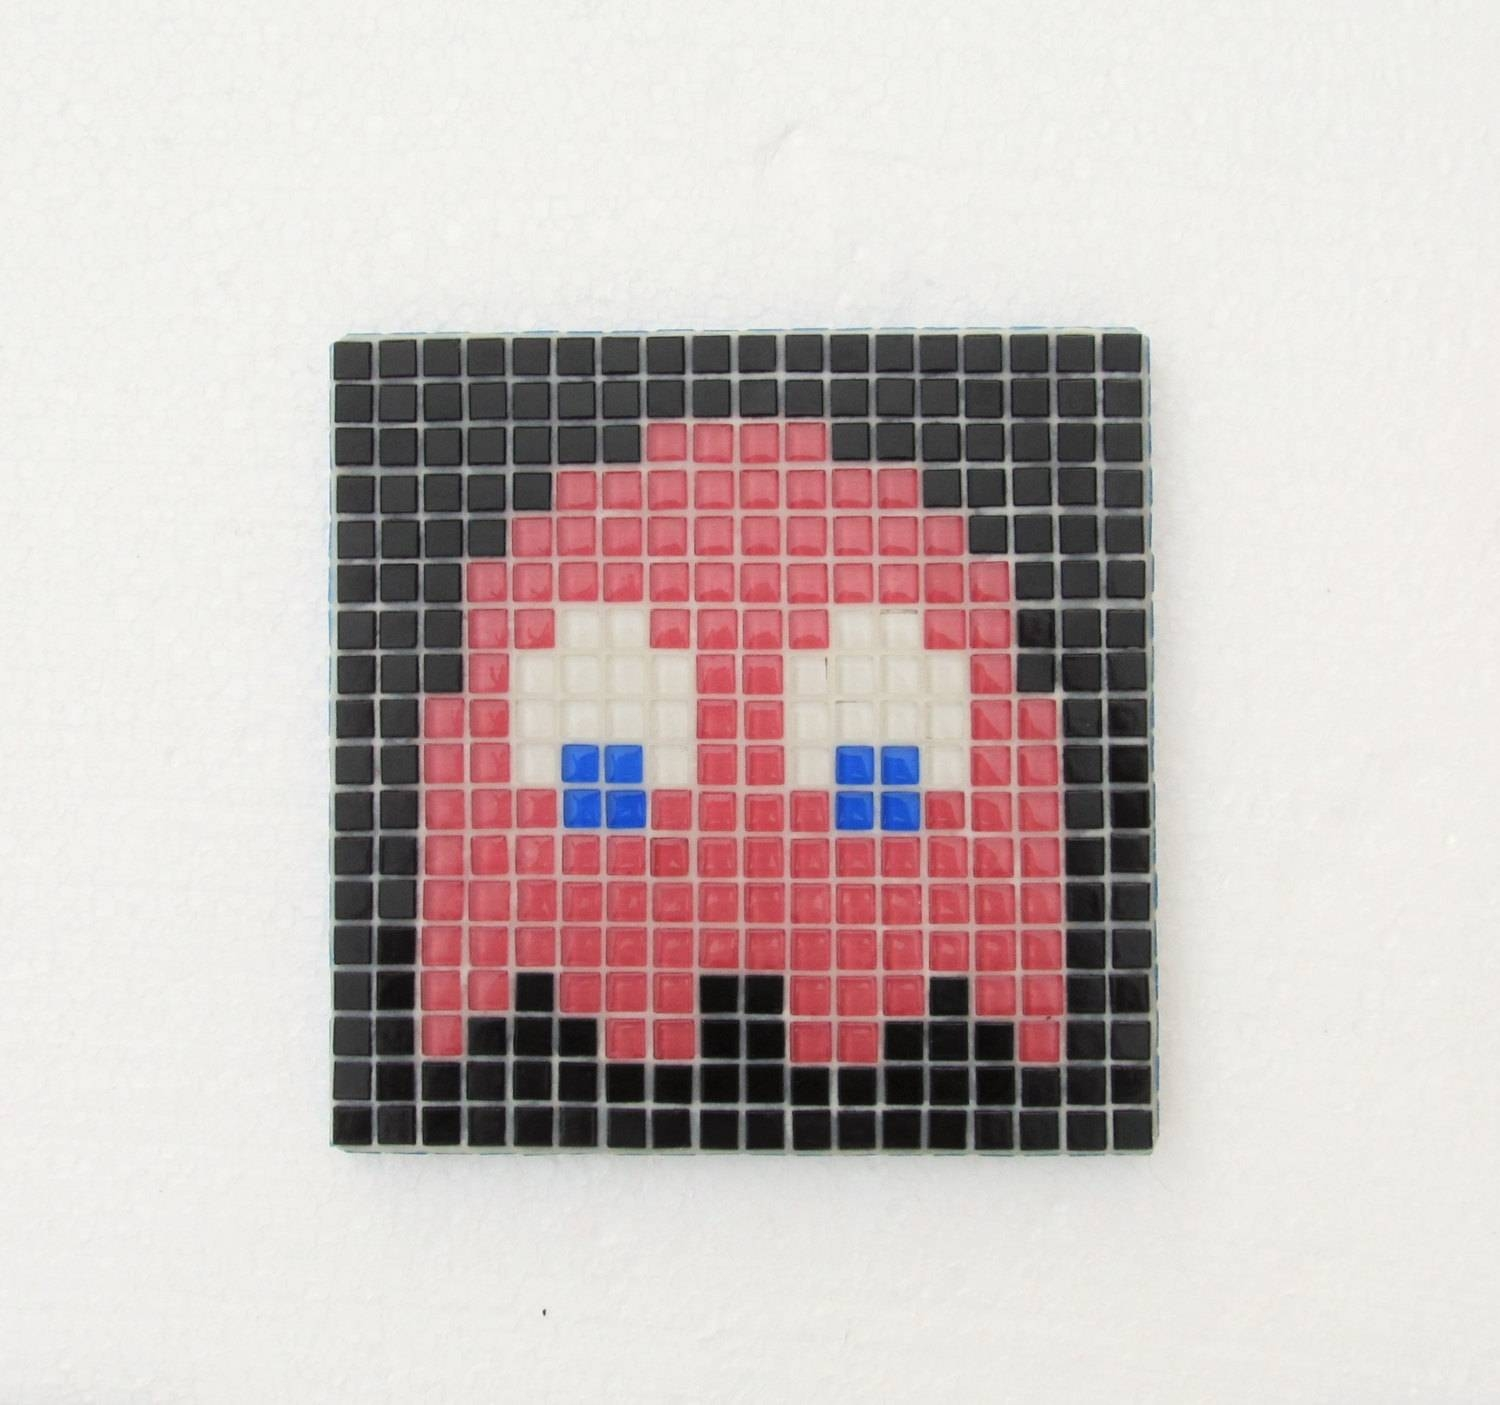 Original Pacman Mosaic Wall Art Pacman Ghost Speedy Pinky Intended For Latest Pixel Mosaic Wall Art (View 6 of 20)